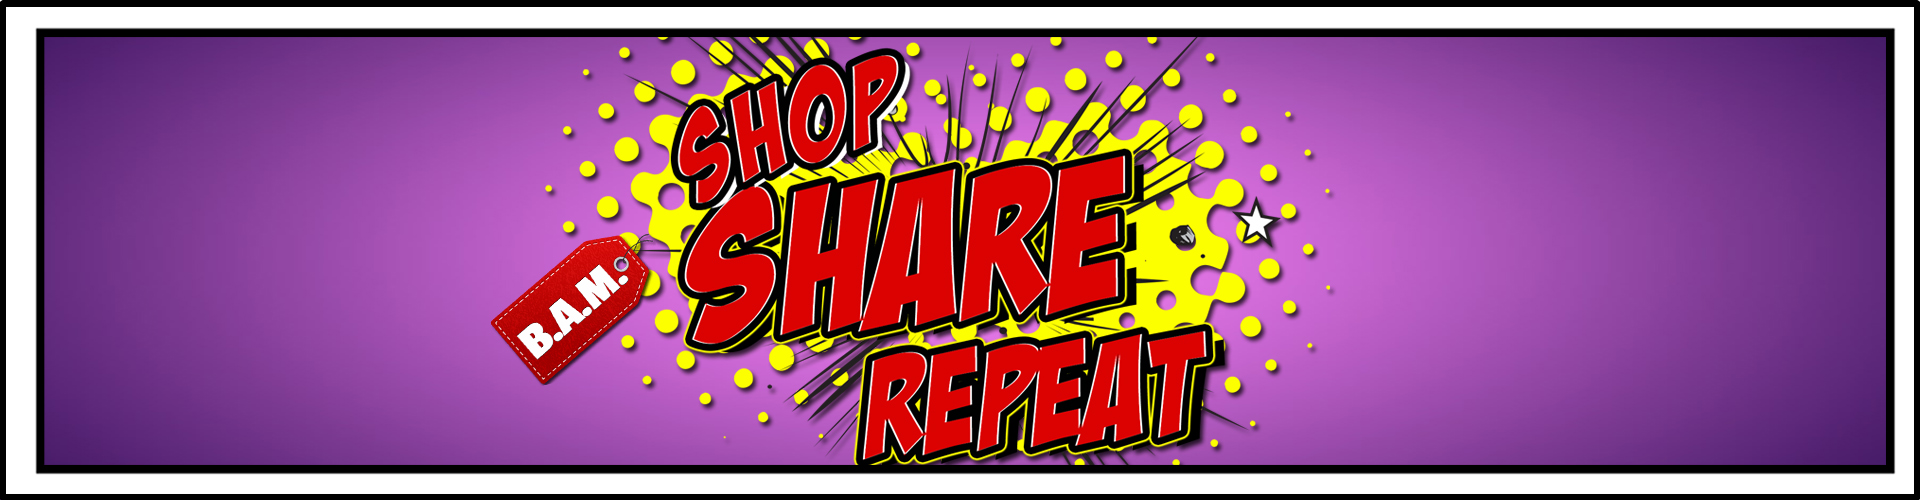 shop,share,repeat